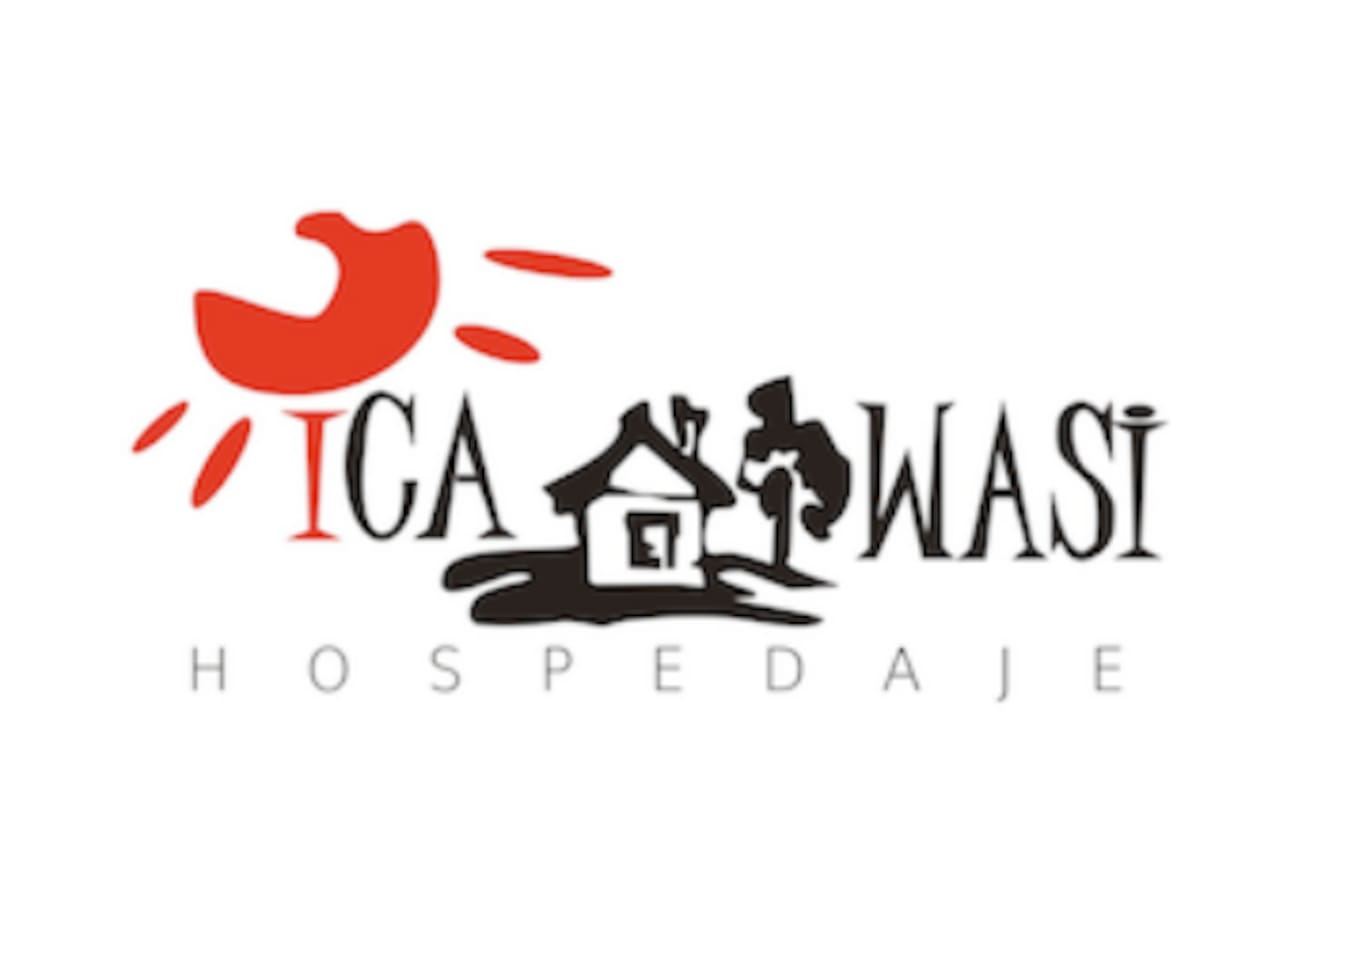 Welcome to ICA WASI - your home in Ica!